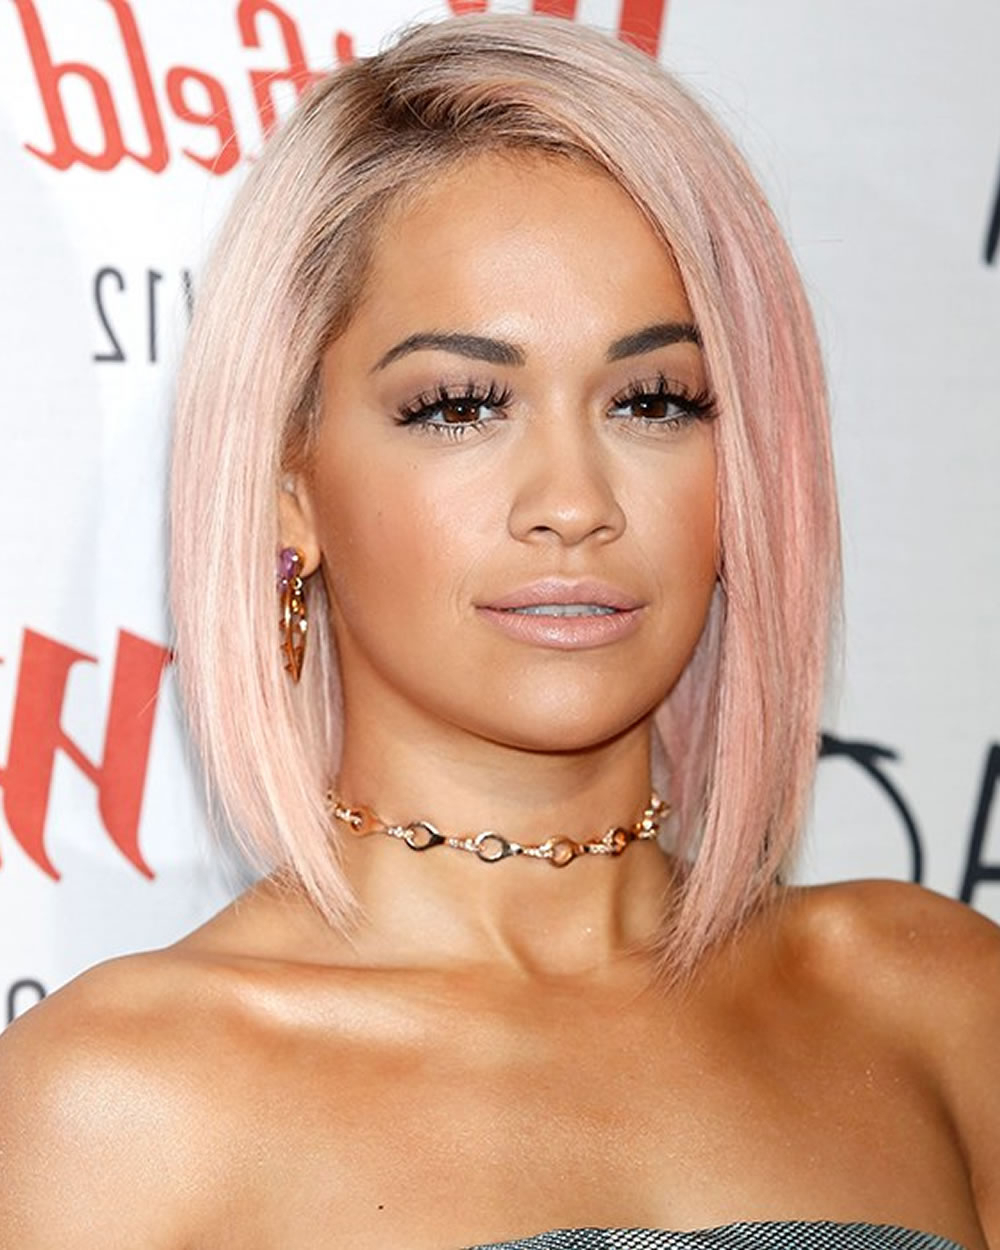 Trendy Rita Ora Medium Hairstyles In Rita Ora's Short Hairstyles (Pixie + Bob) For 2018 (Gallery 6 of 20)